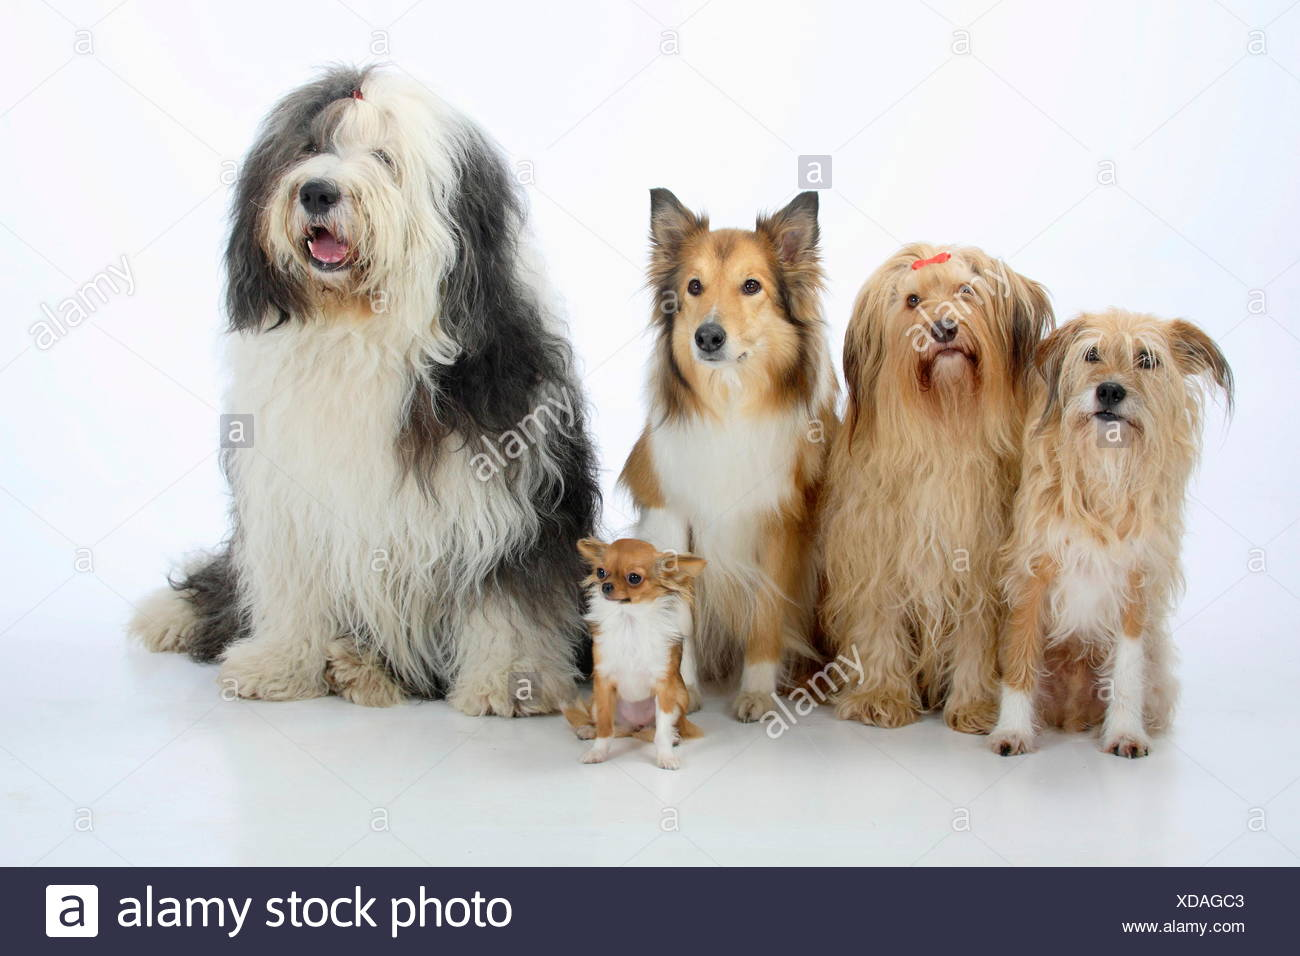 Group portrait of five dogs sitting, from left to rt: two mongrels, Rough Collie, Bobtail (Old English Sheepdog) and longhaired Chihuahua. - Stock Image